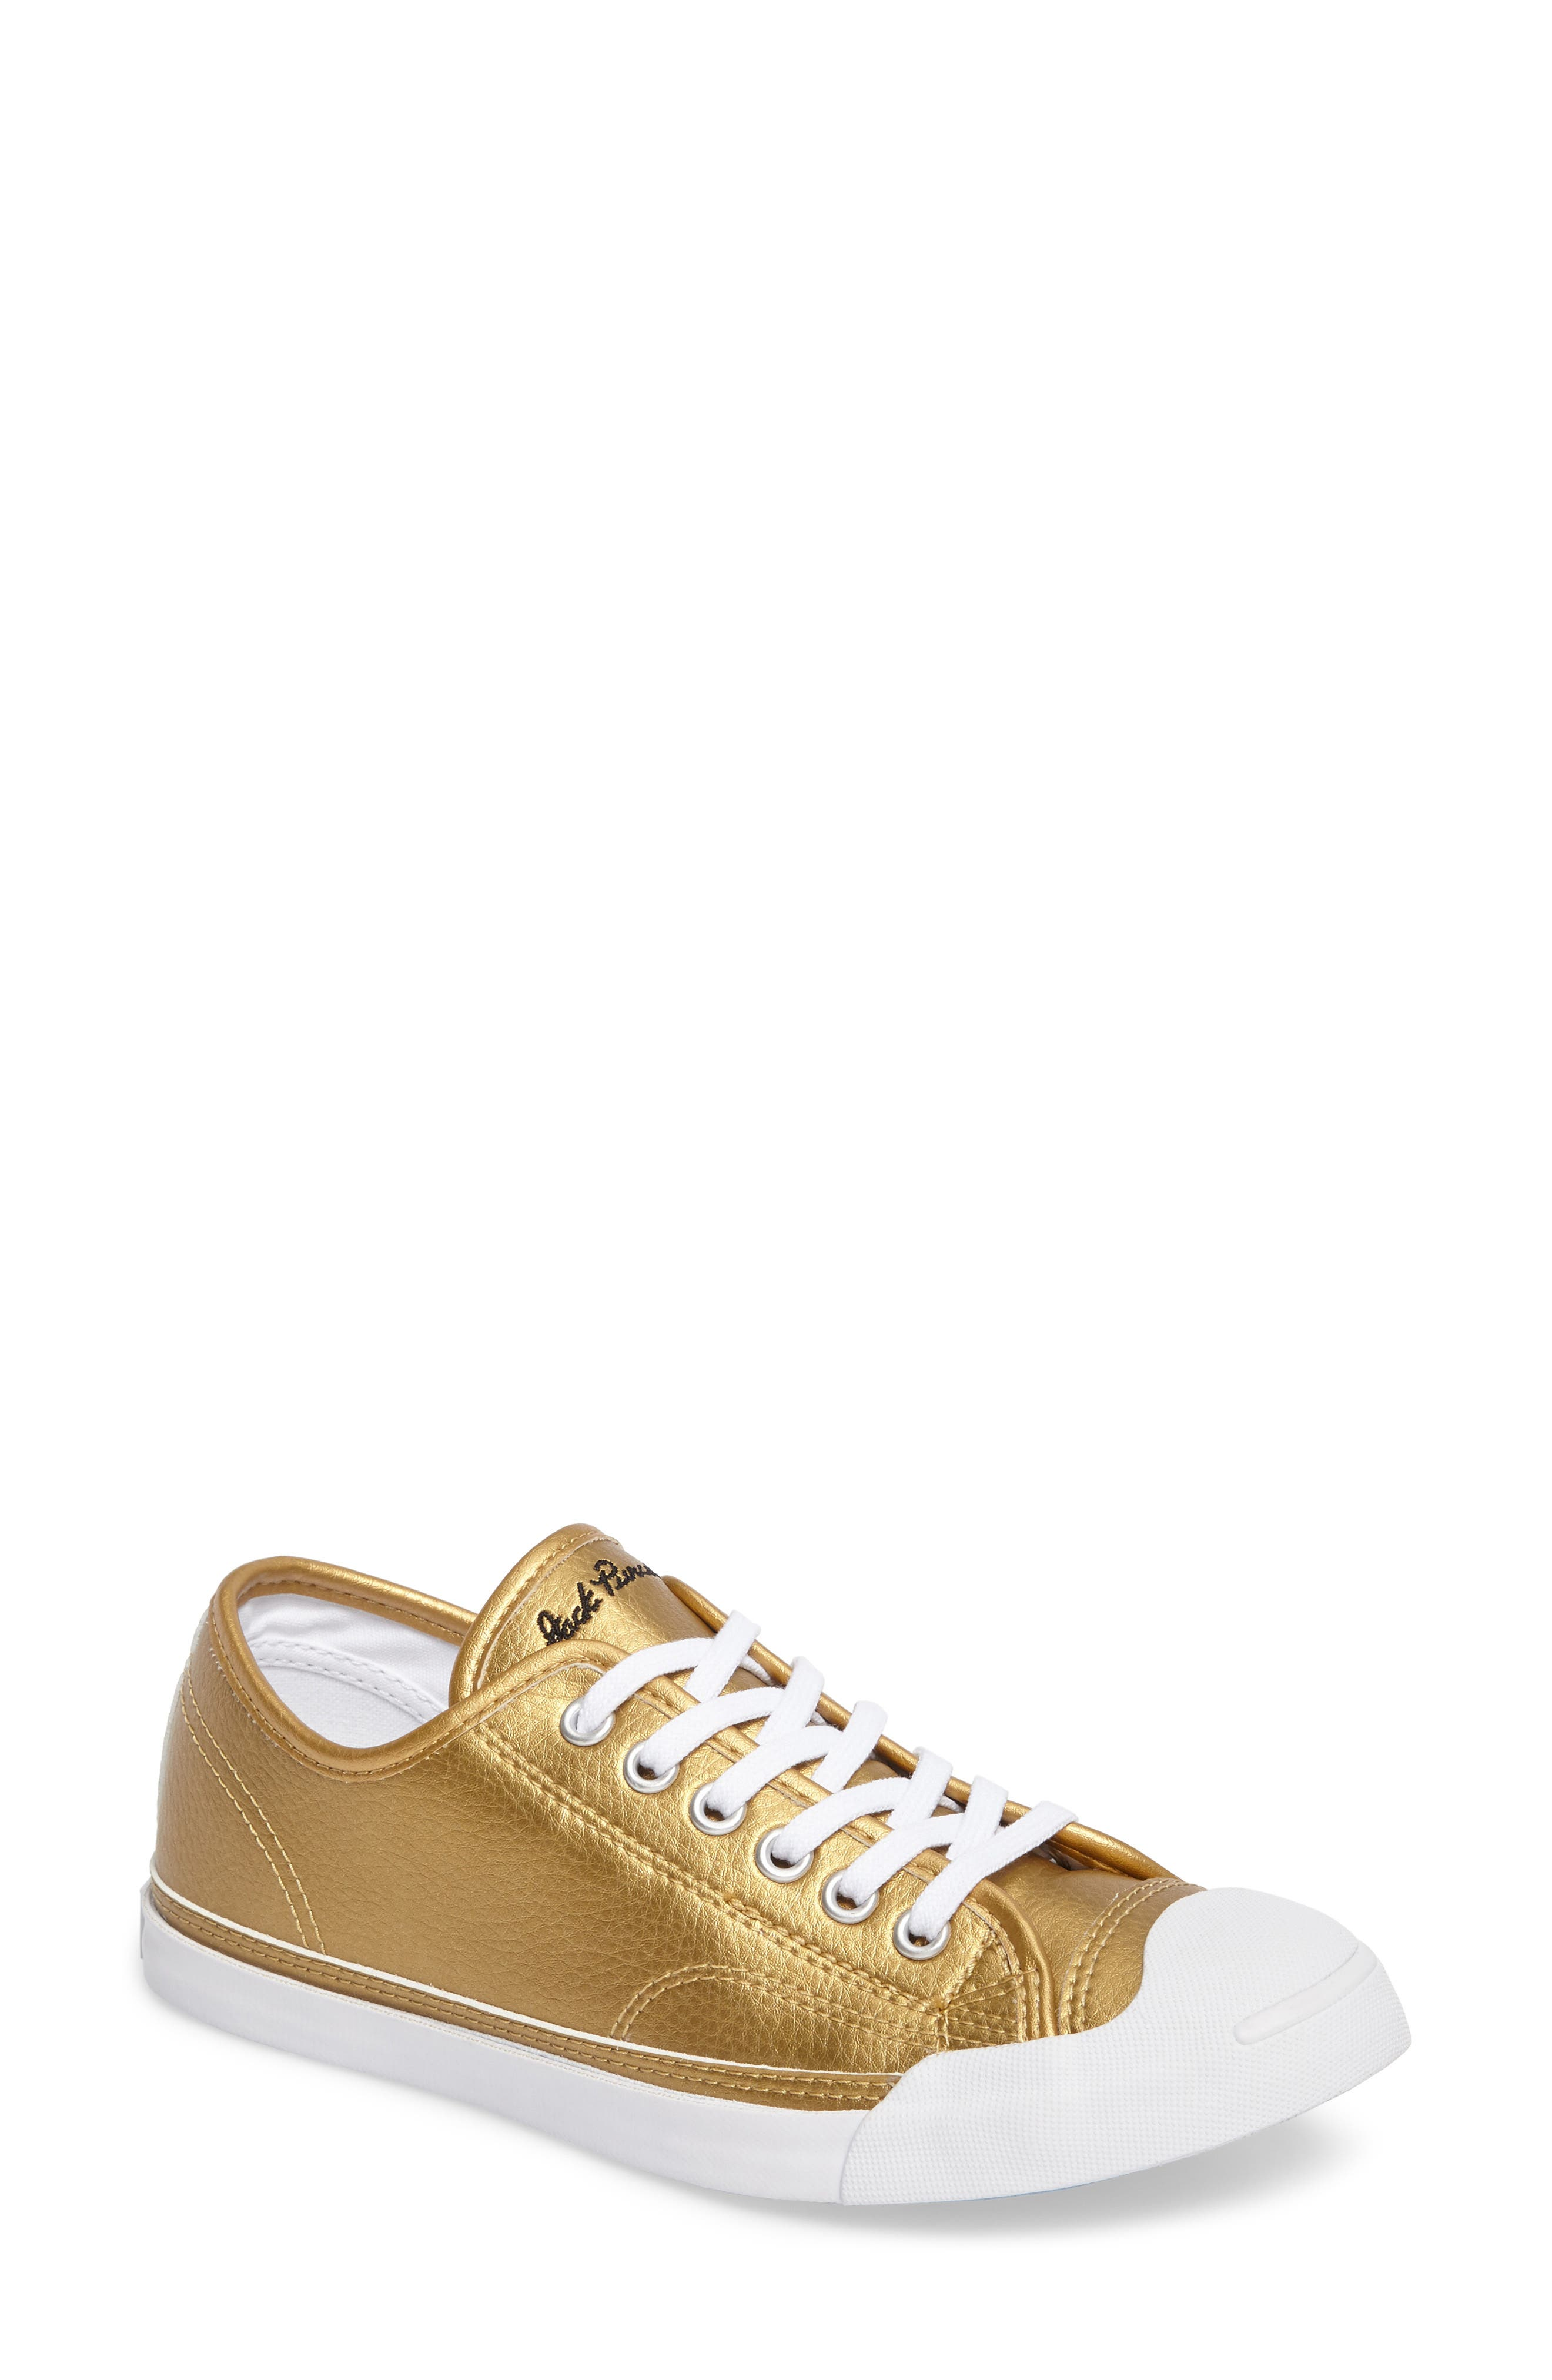 ,                             Jack Purcell Low Top Sneaker,                             Main thumbnail 49, color,                             710